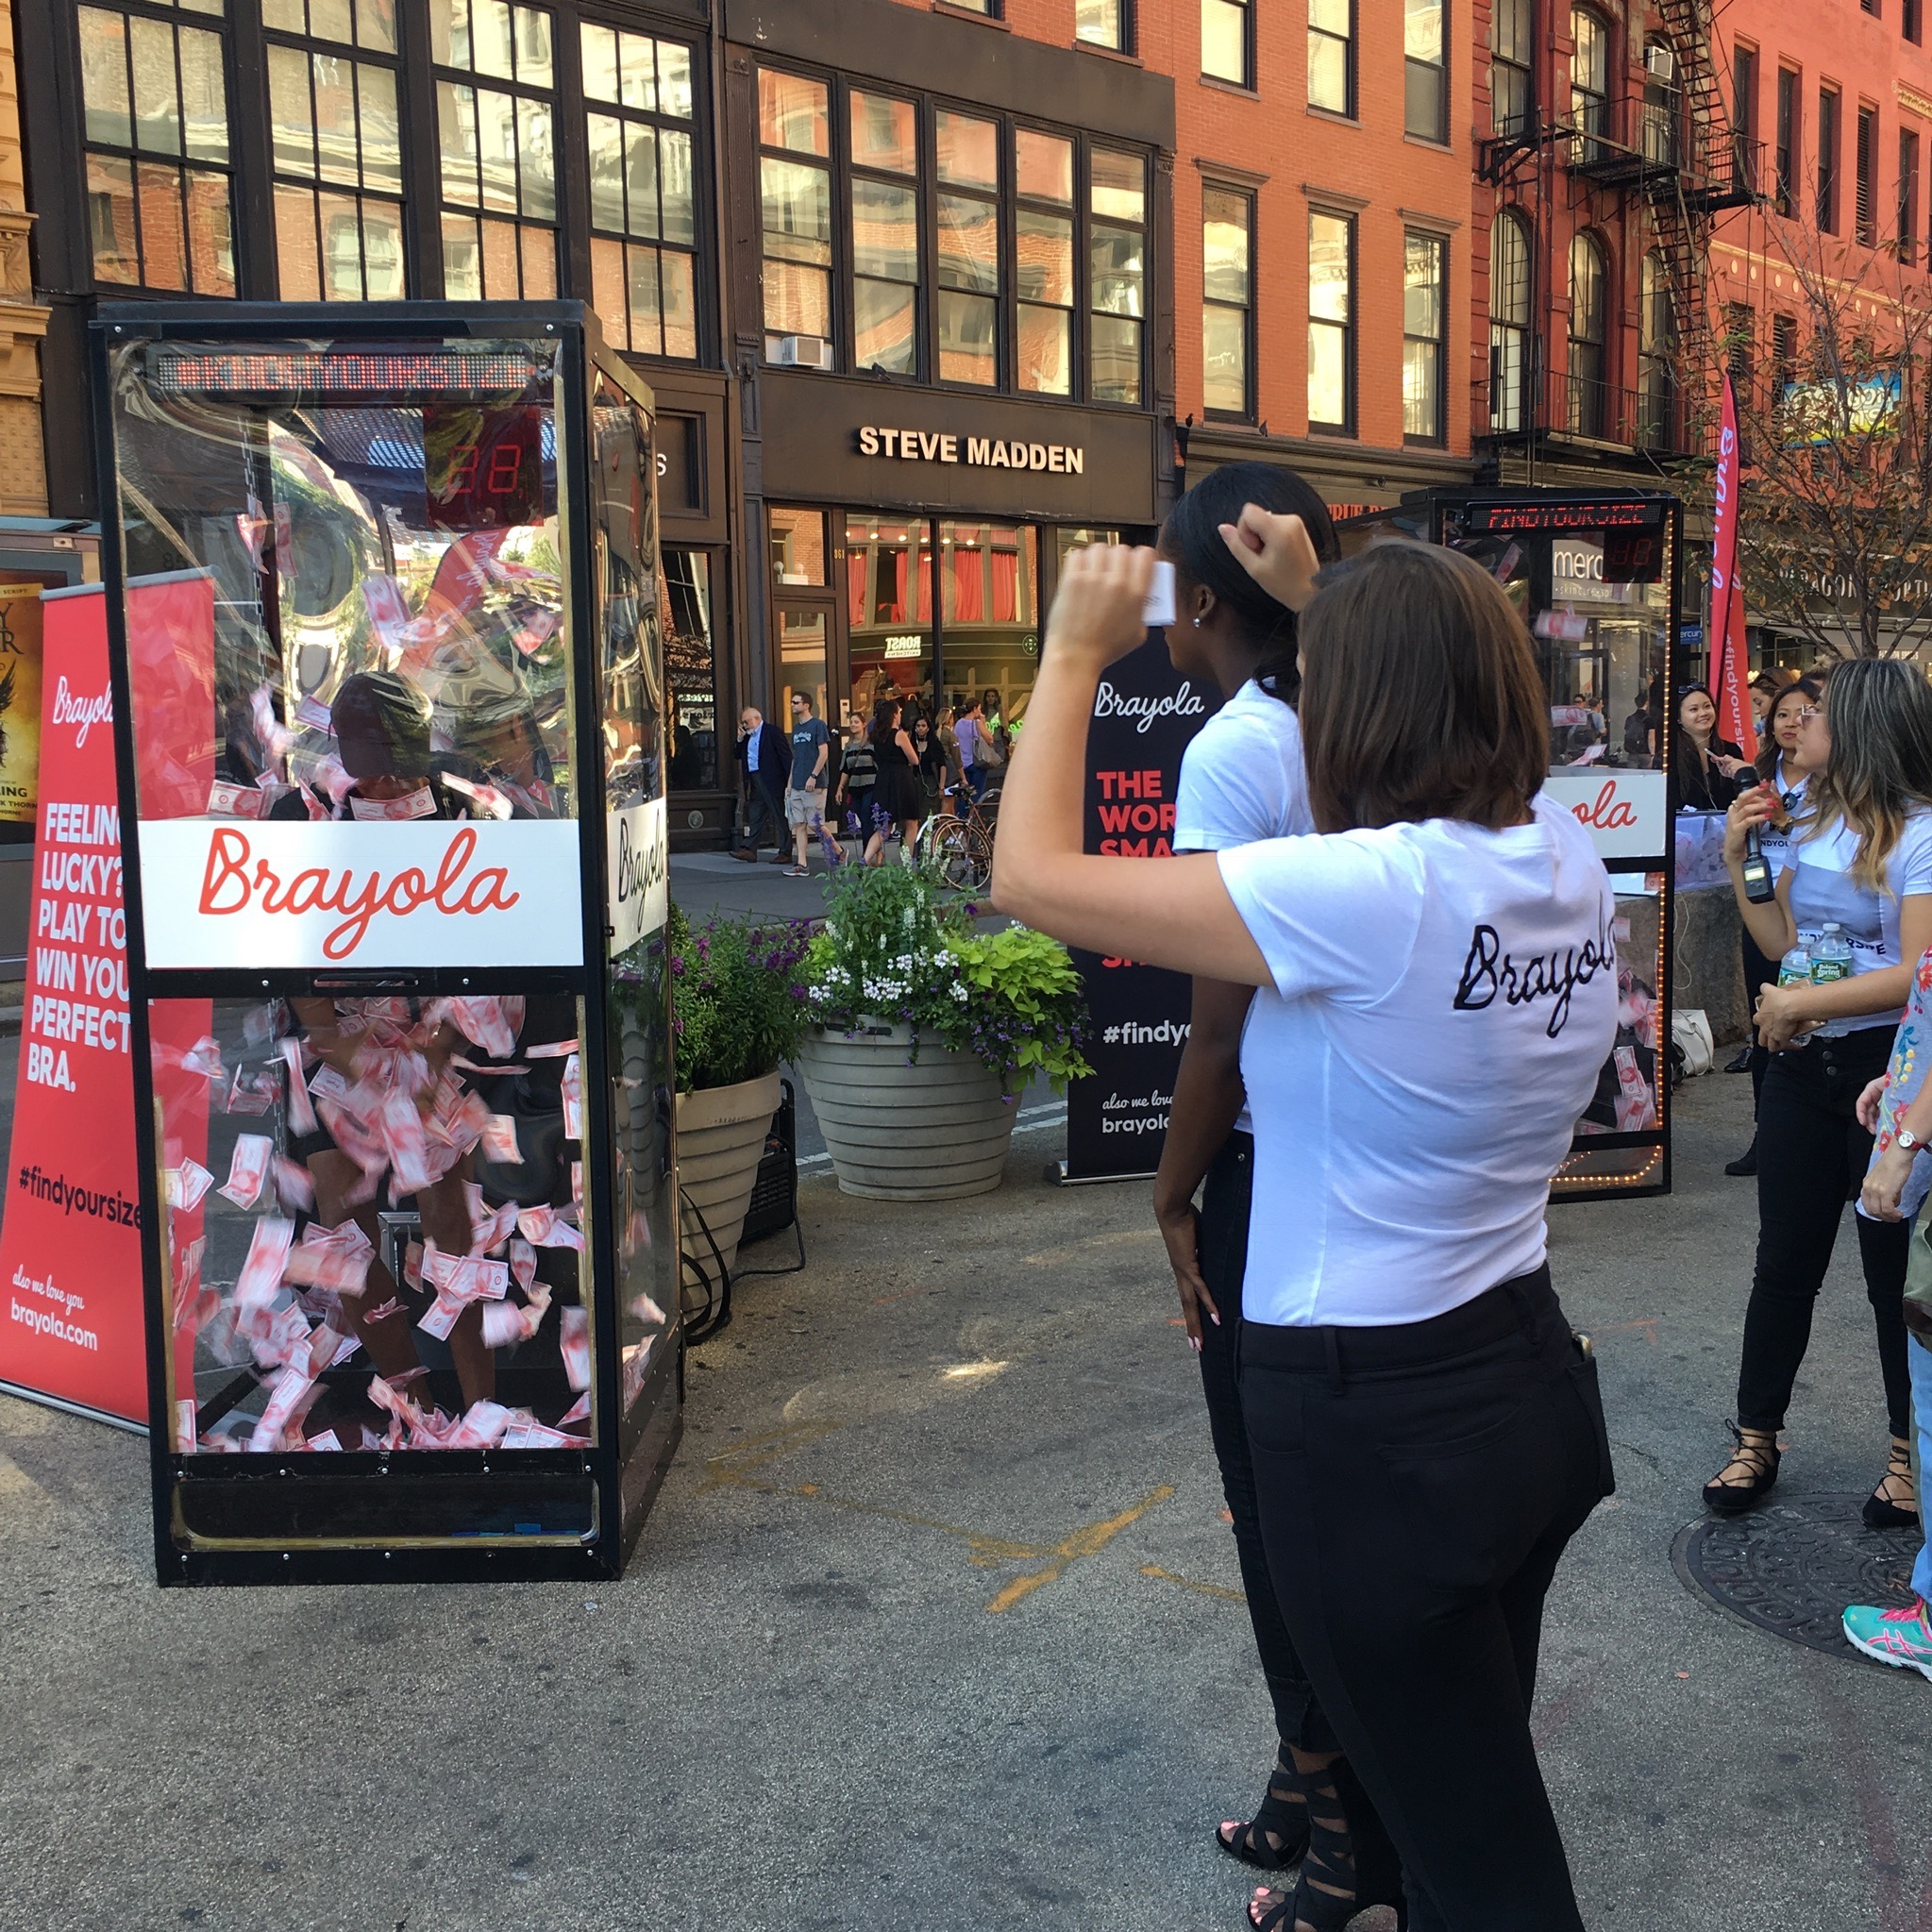 Preview Events - Brayola - cash machine activation - union square.jpg